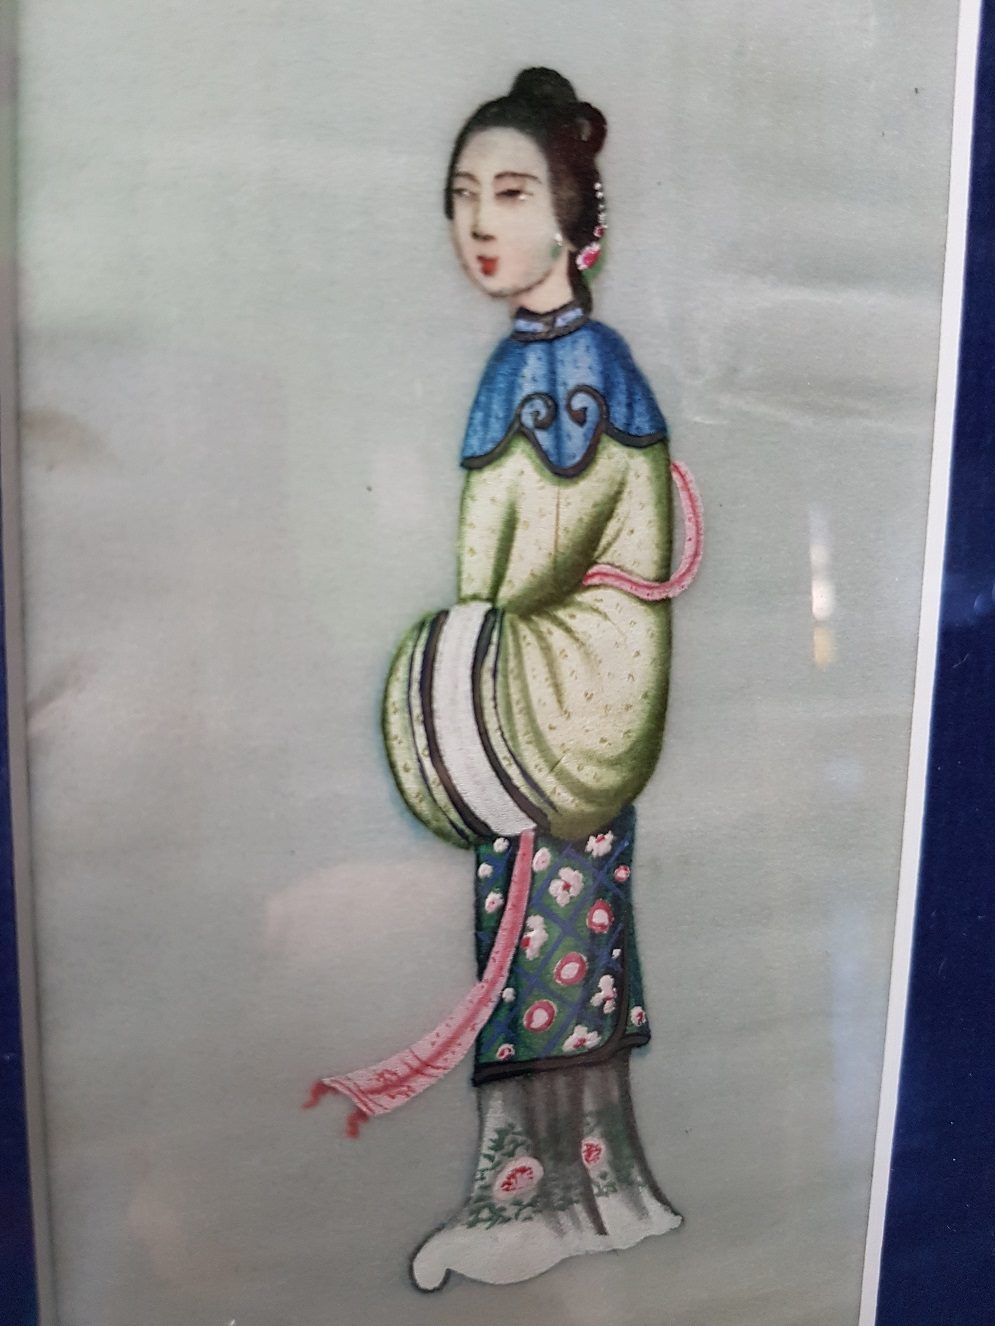 Pit paper Painting of a Chinese Elegant Lady with Pink Scarf